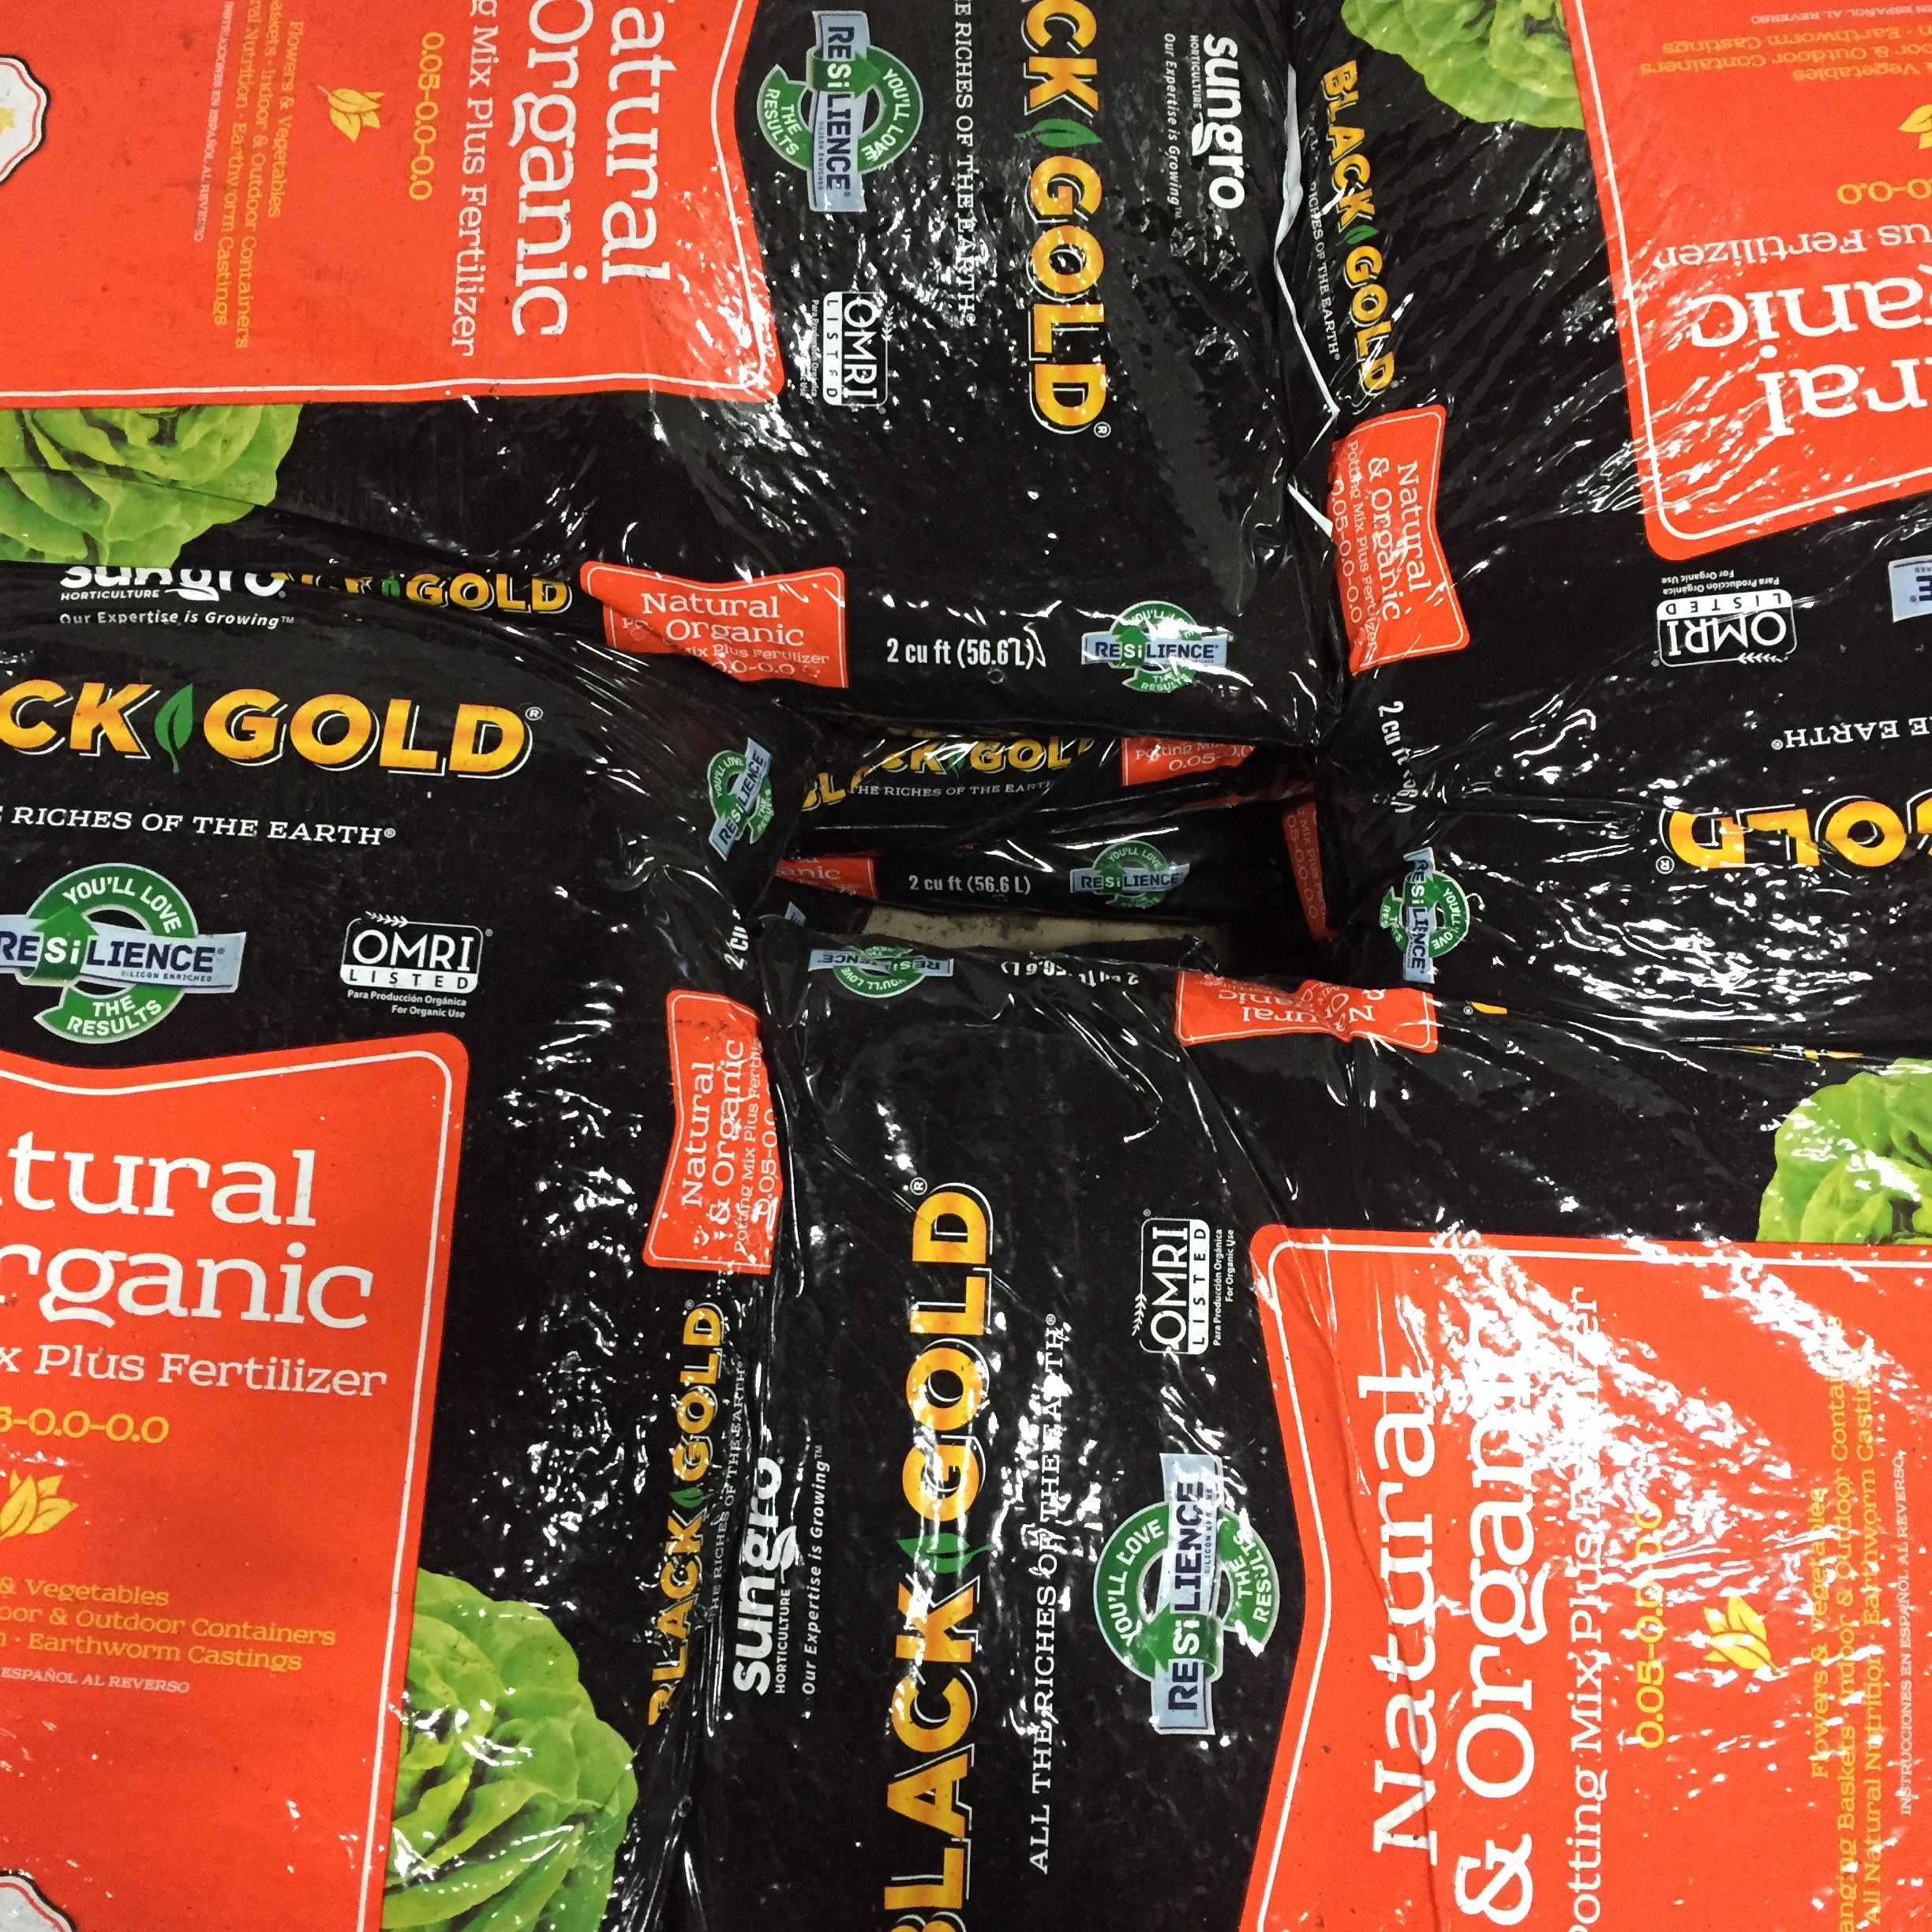 Black Gold Natural Organic Potting Soil Organic Concentrates Inc